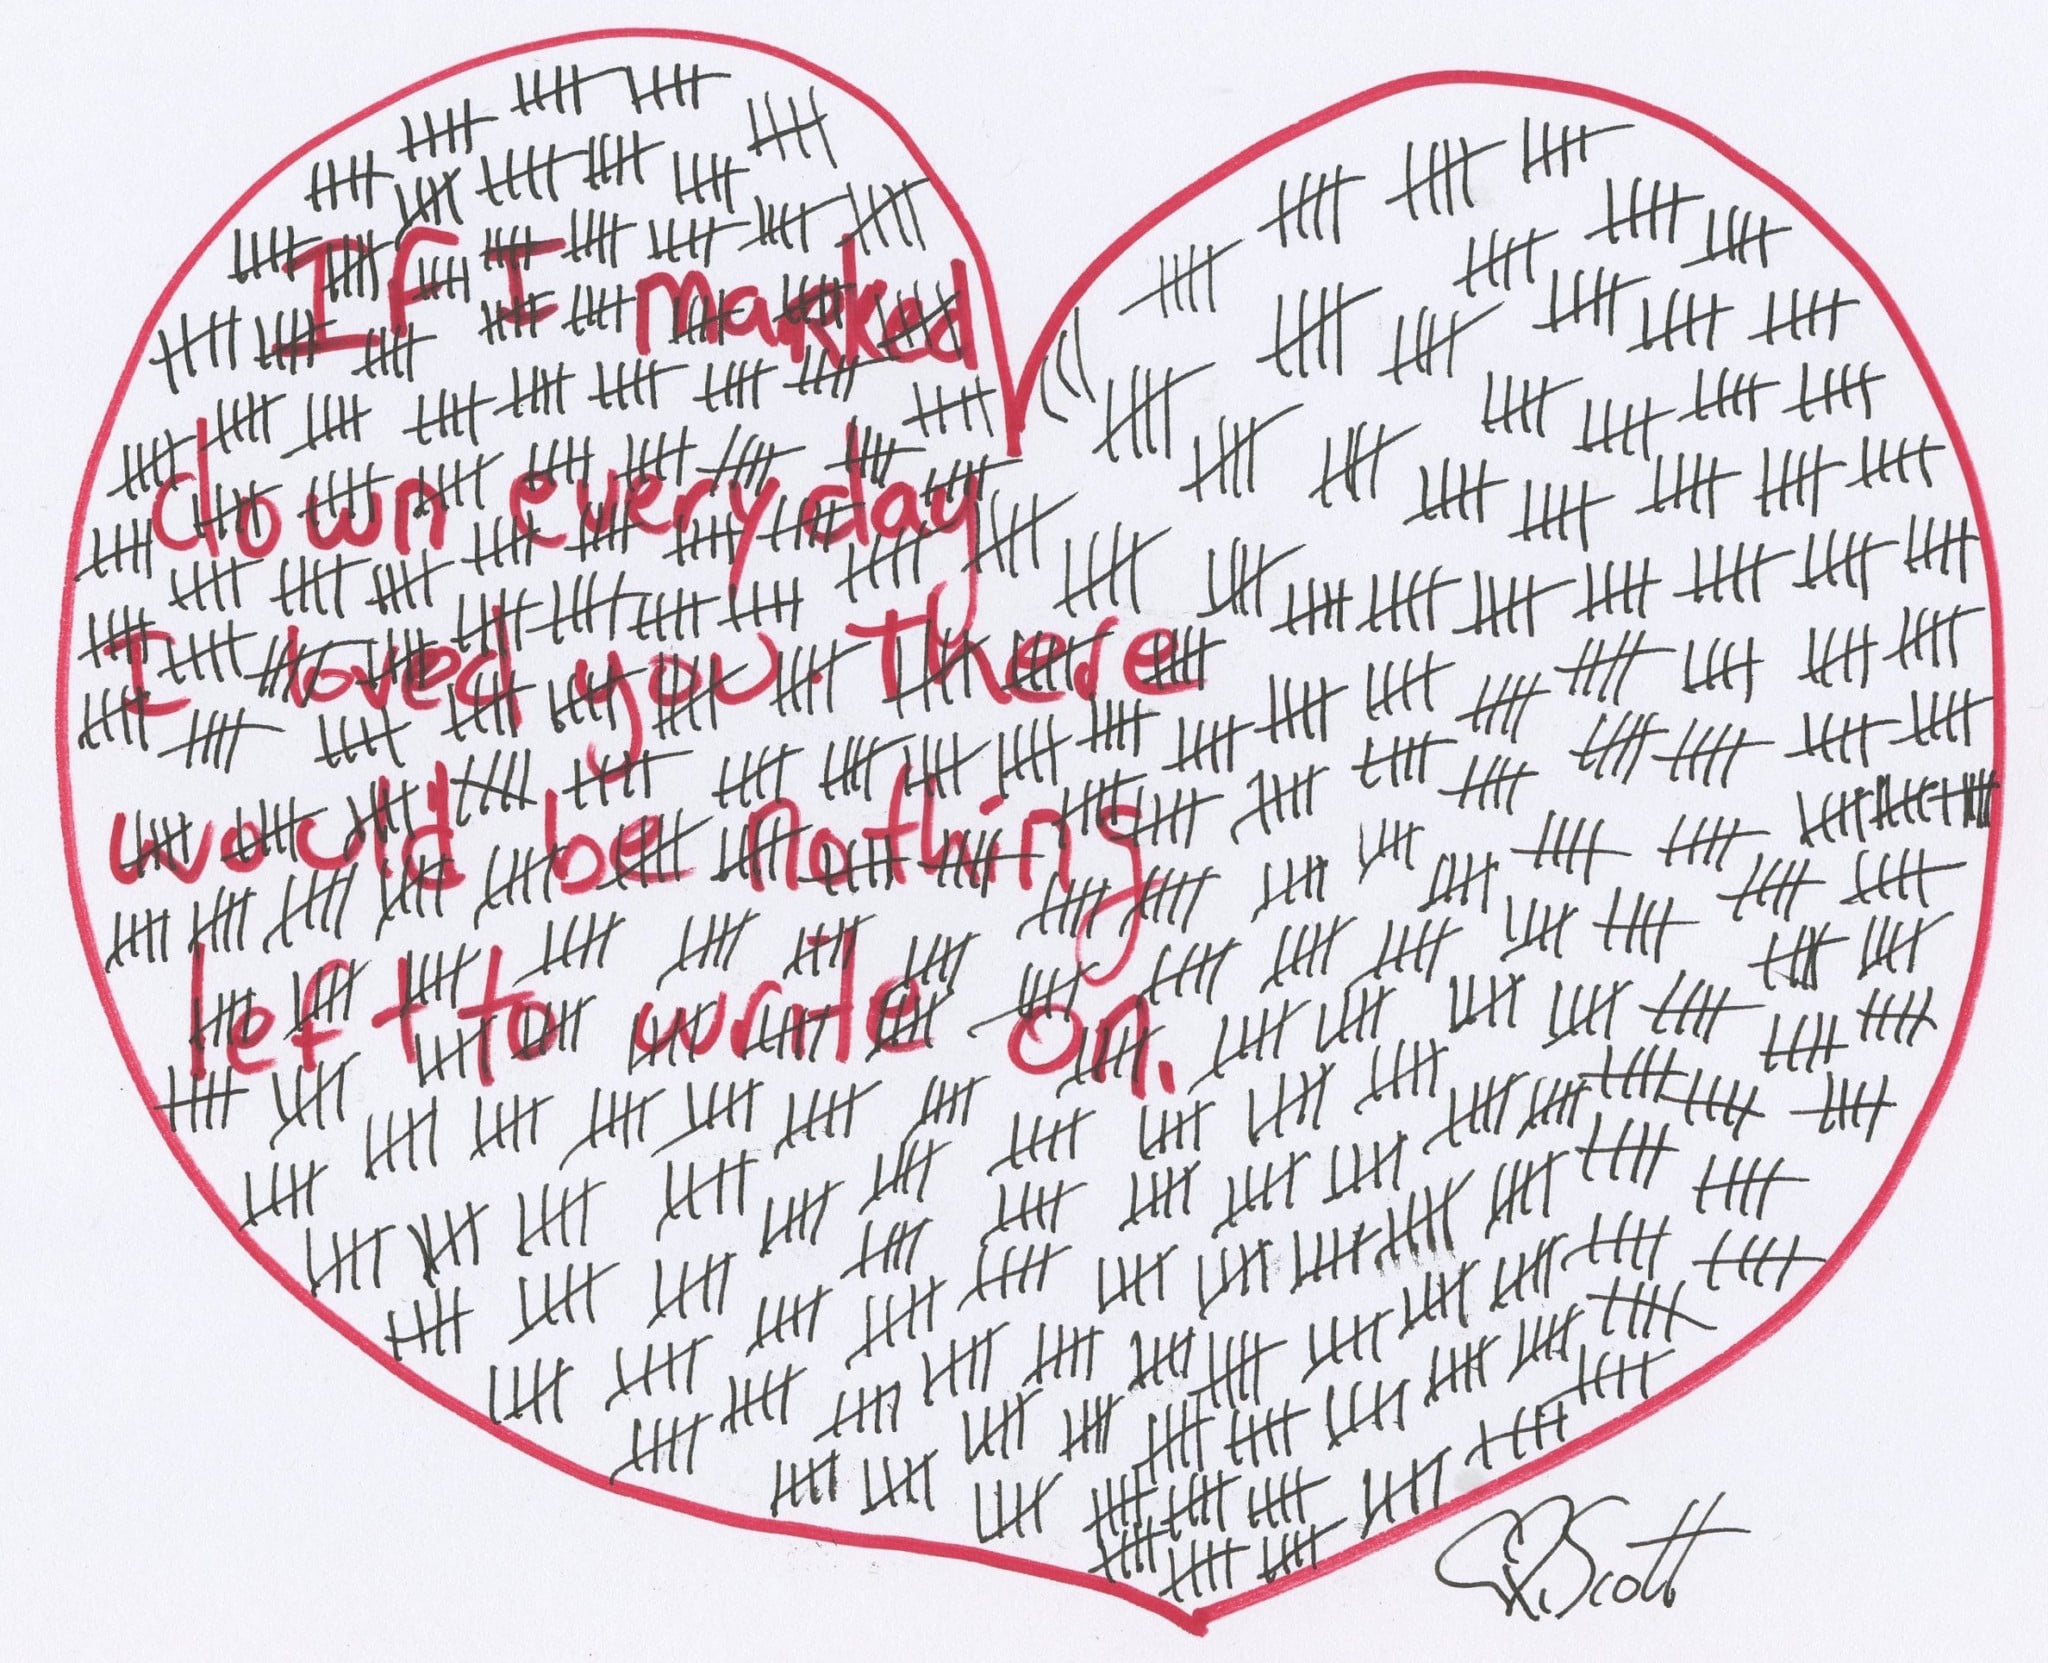 If I marked down the days I love you there would be nothing left to write on.